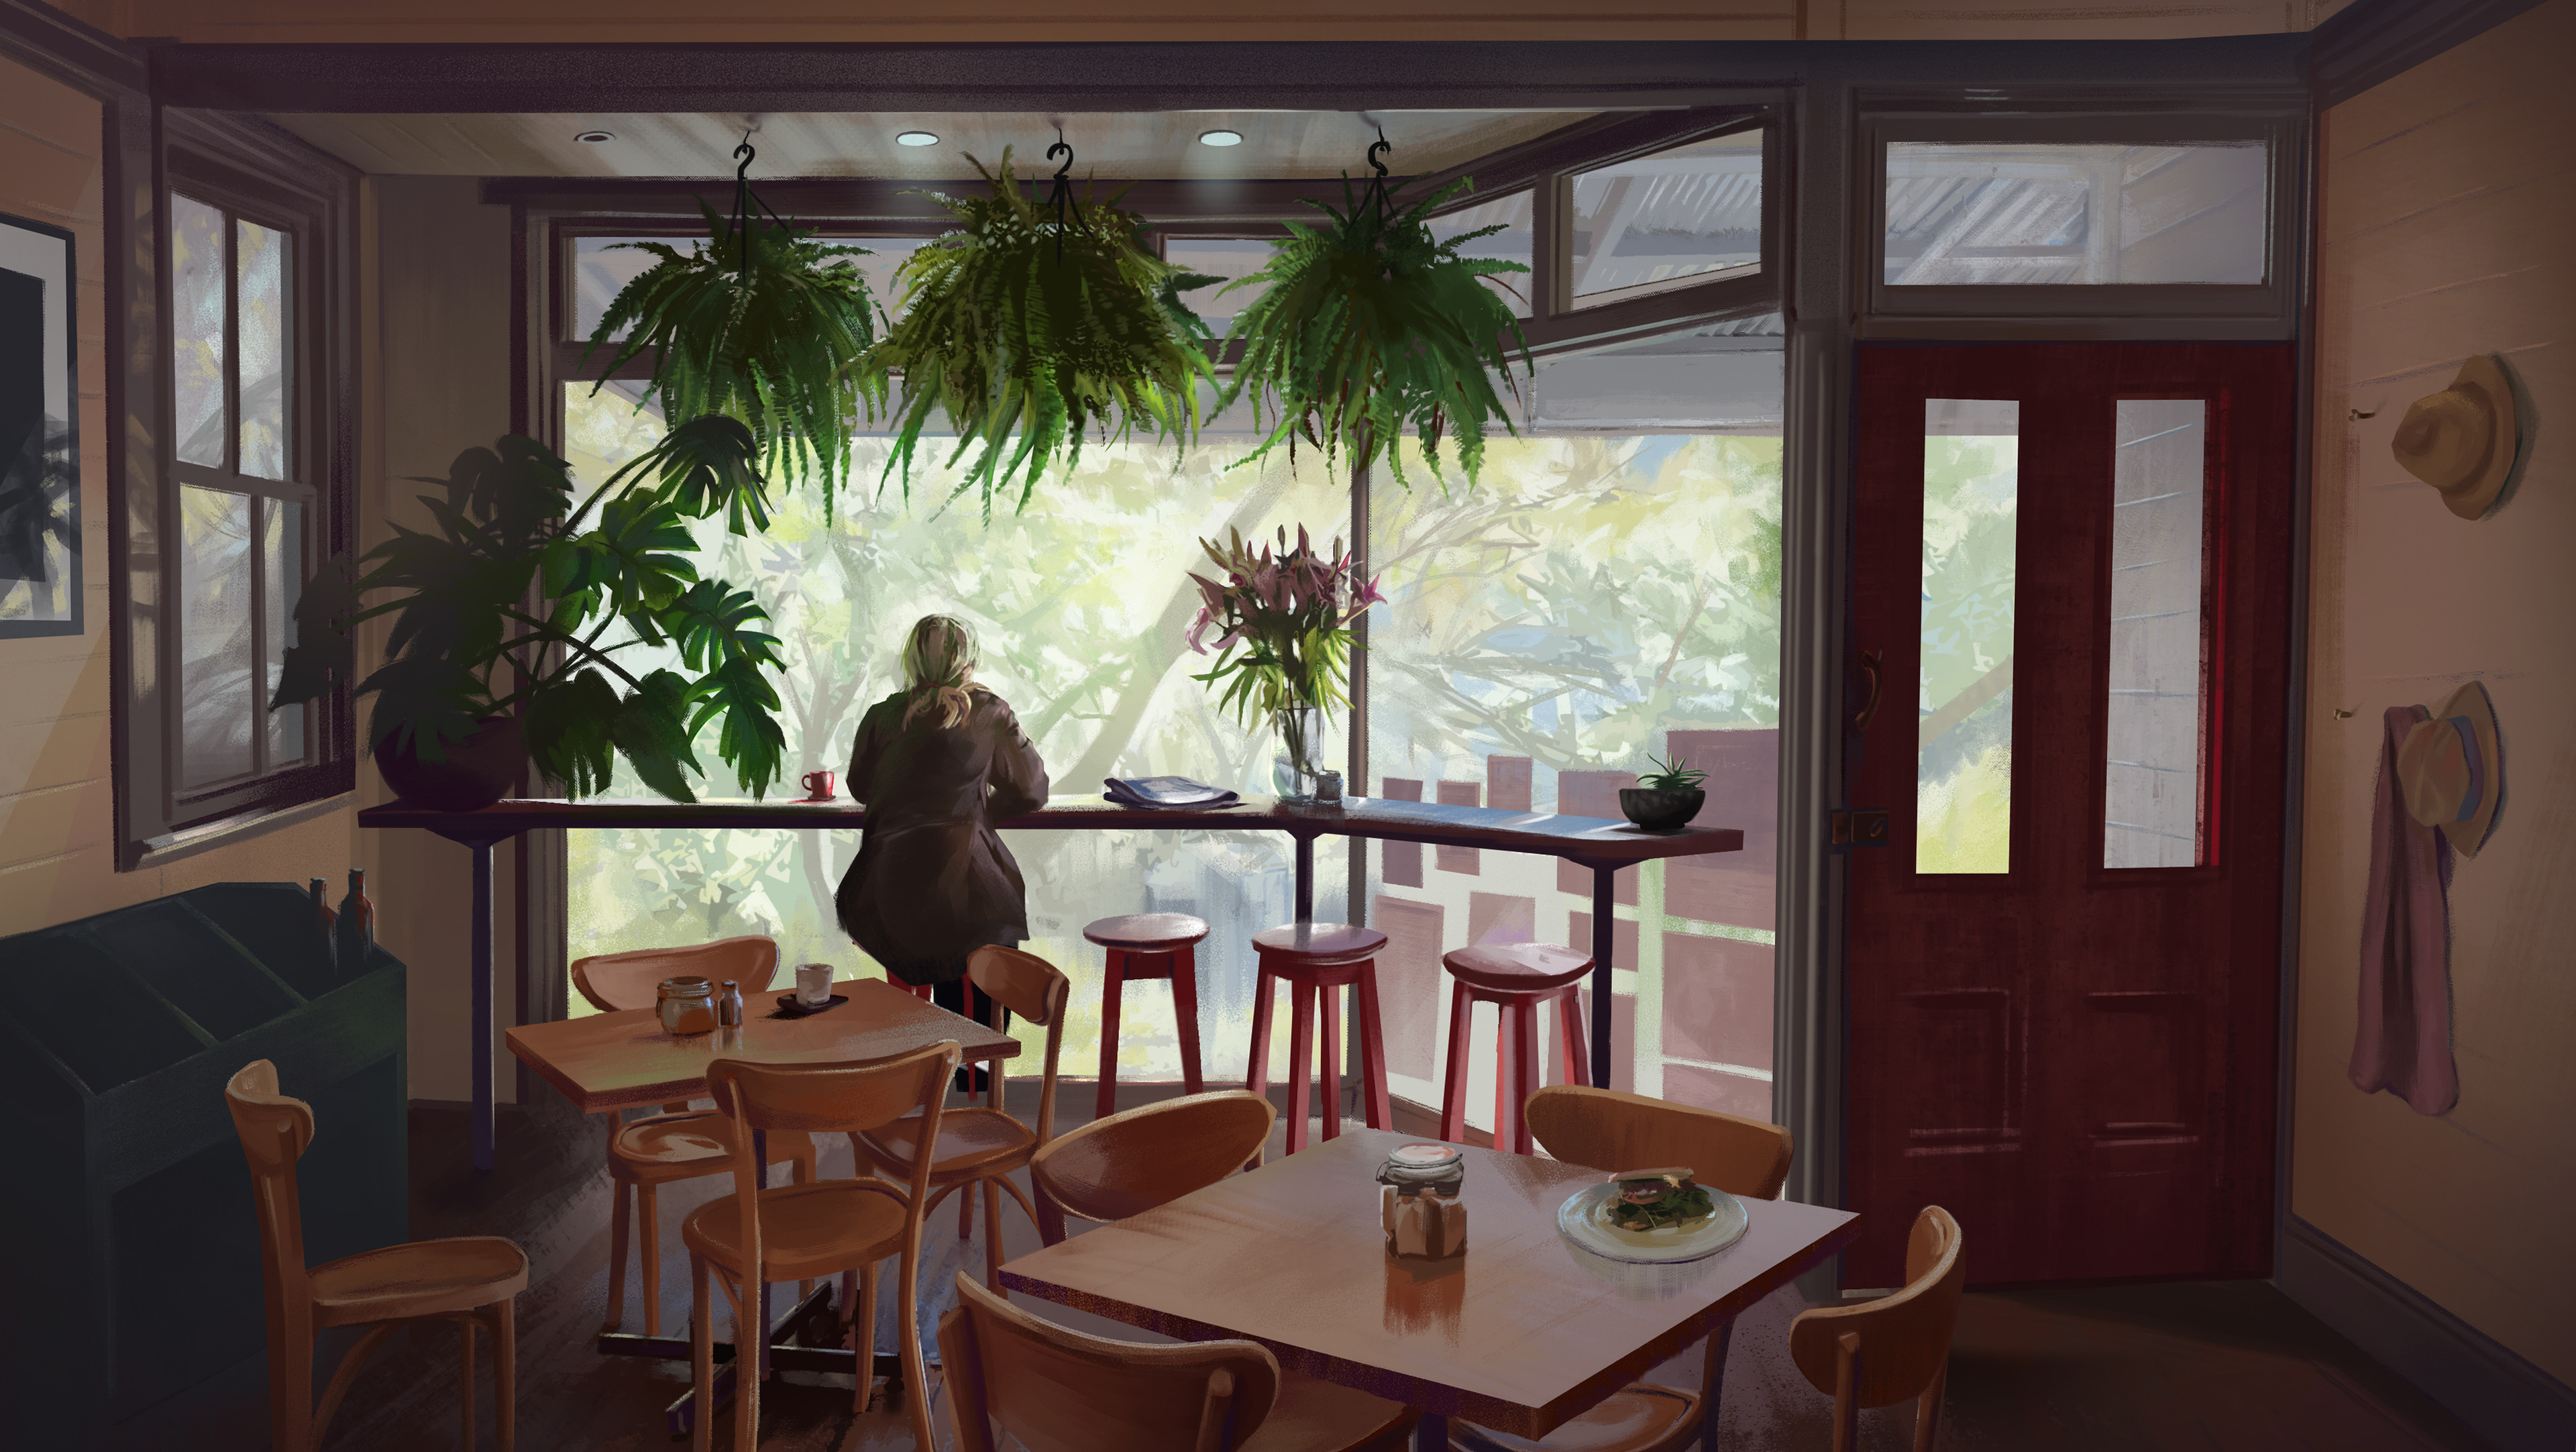 Cafe in the Blue Mountains, Australia.